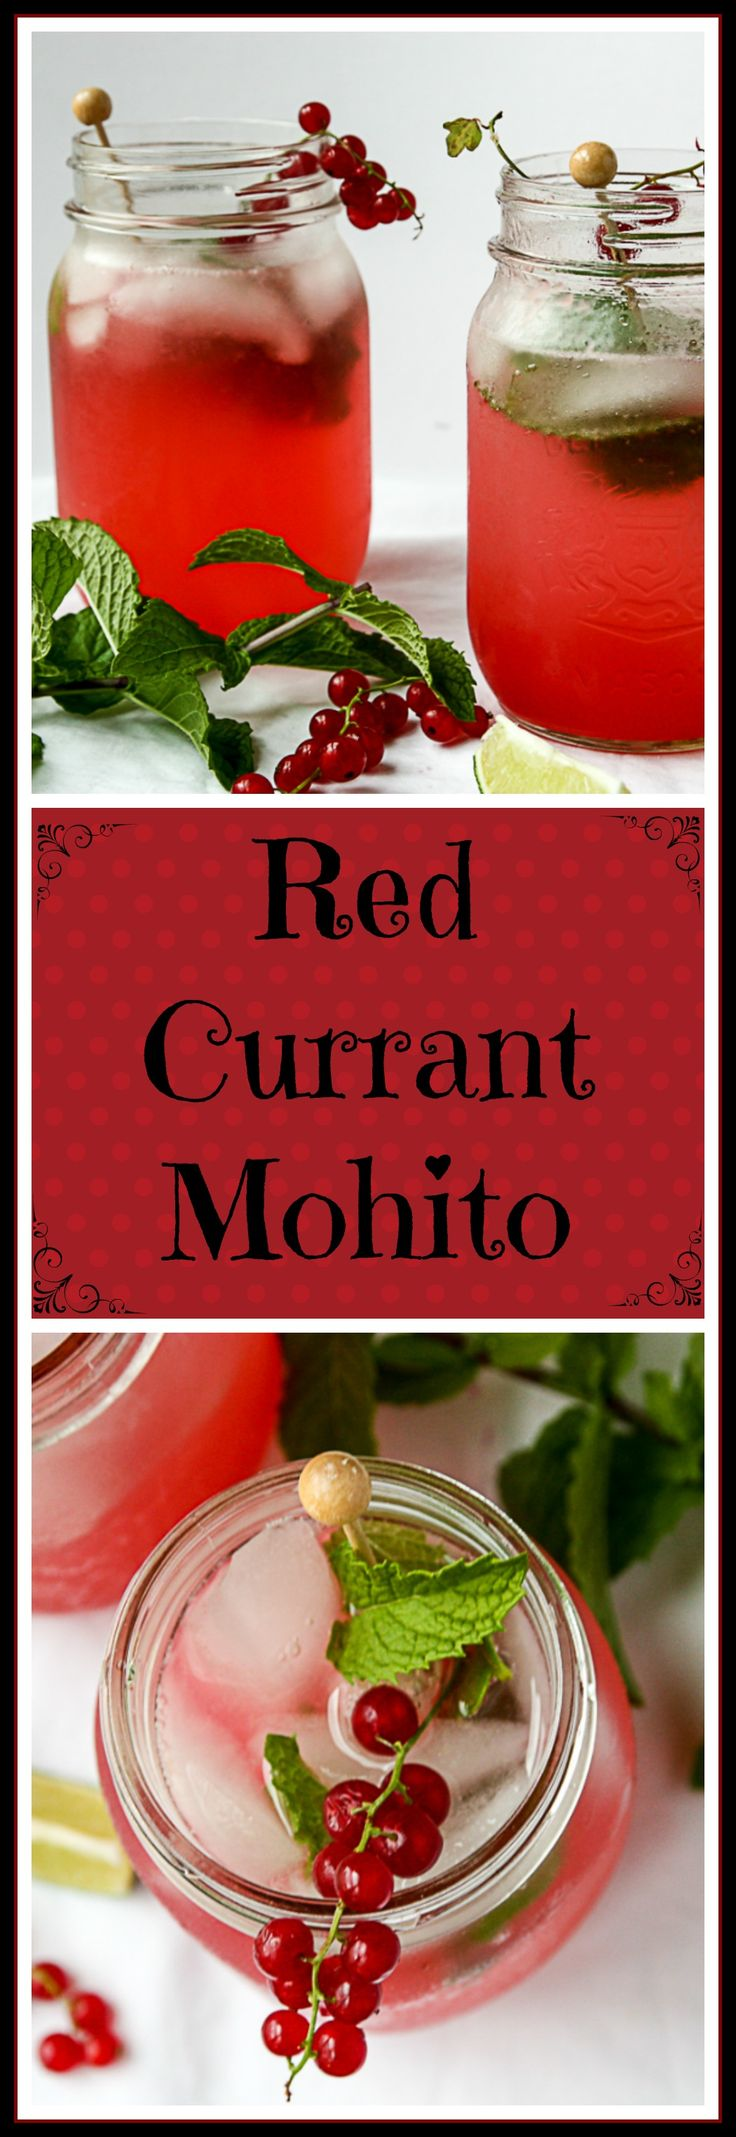 This festive twist on a classic Mohito uses currants, but you can also use cranberries or pomegranates, too.